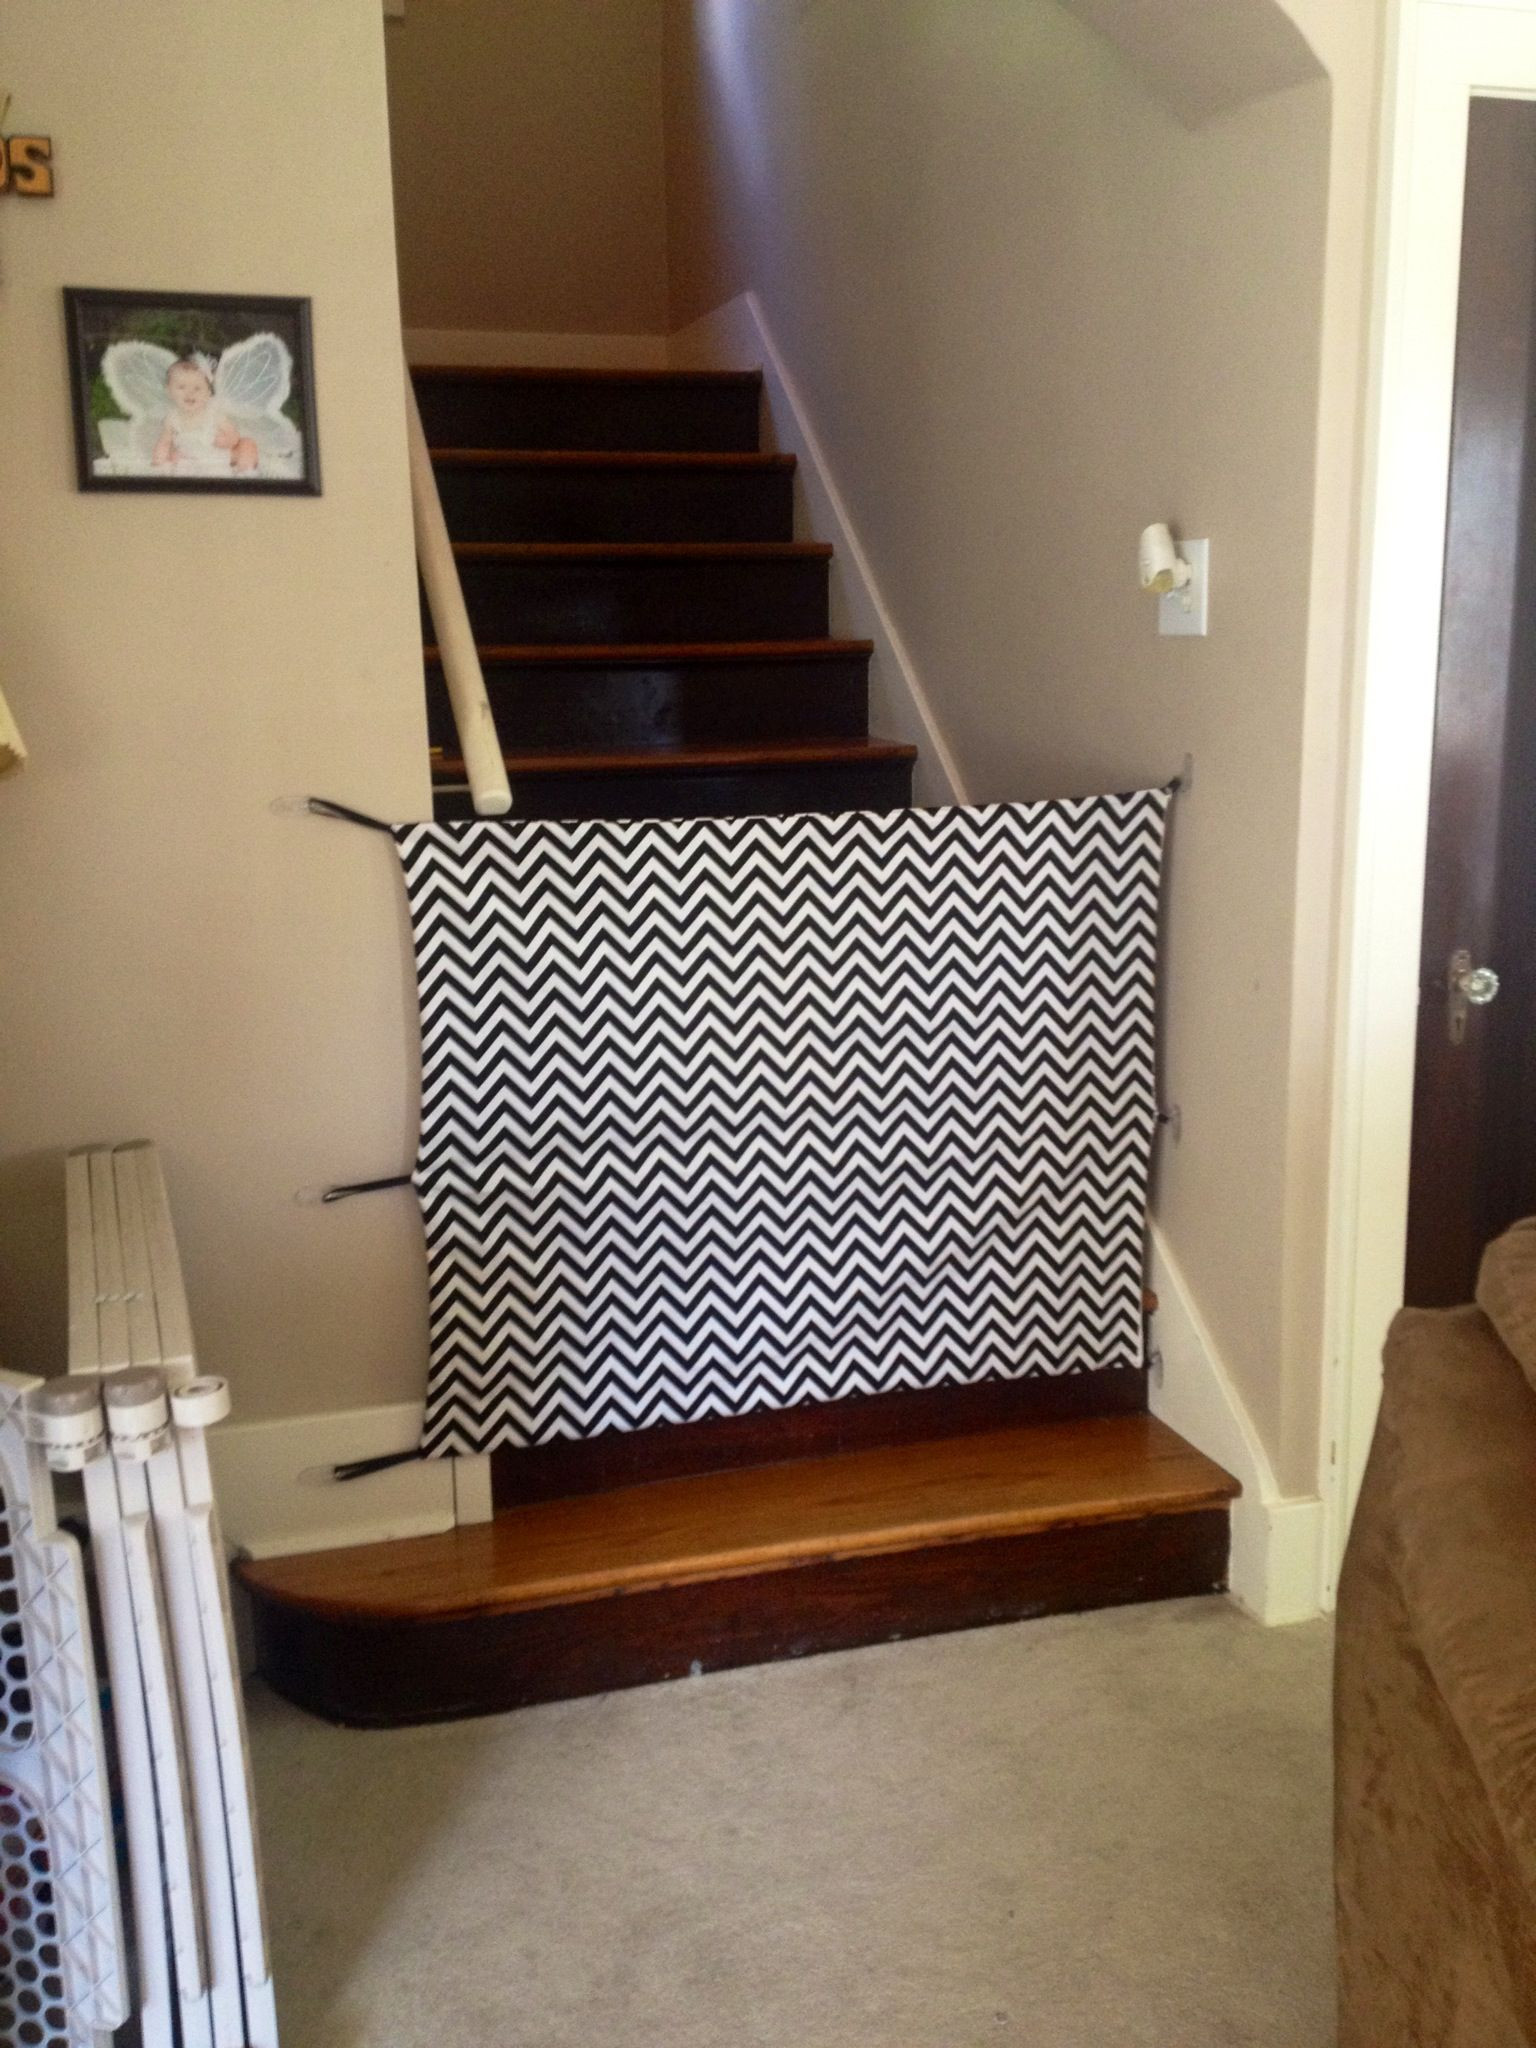 Diy Fabric Baby Gate  DIY fabric baby gate Cost around $30 total and it looks